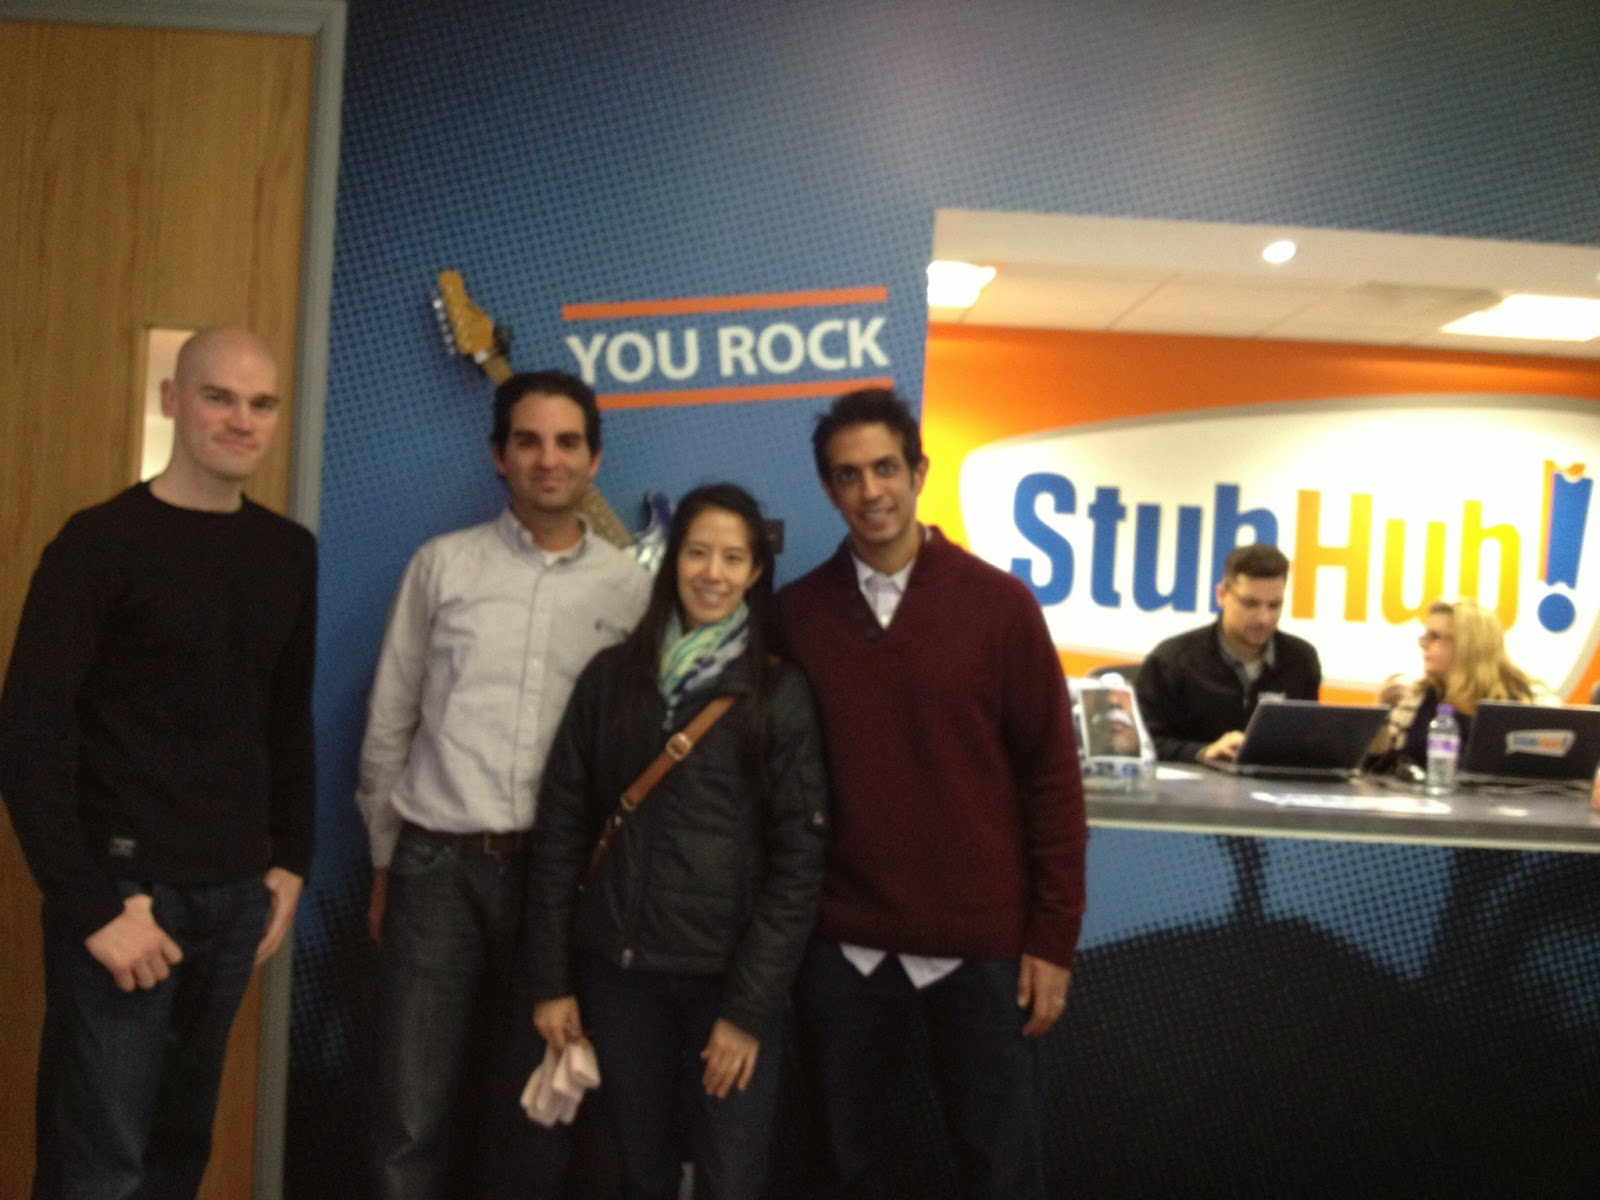 London - First stop, the StubHub! London office